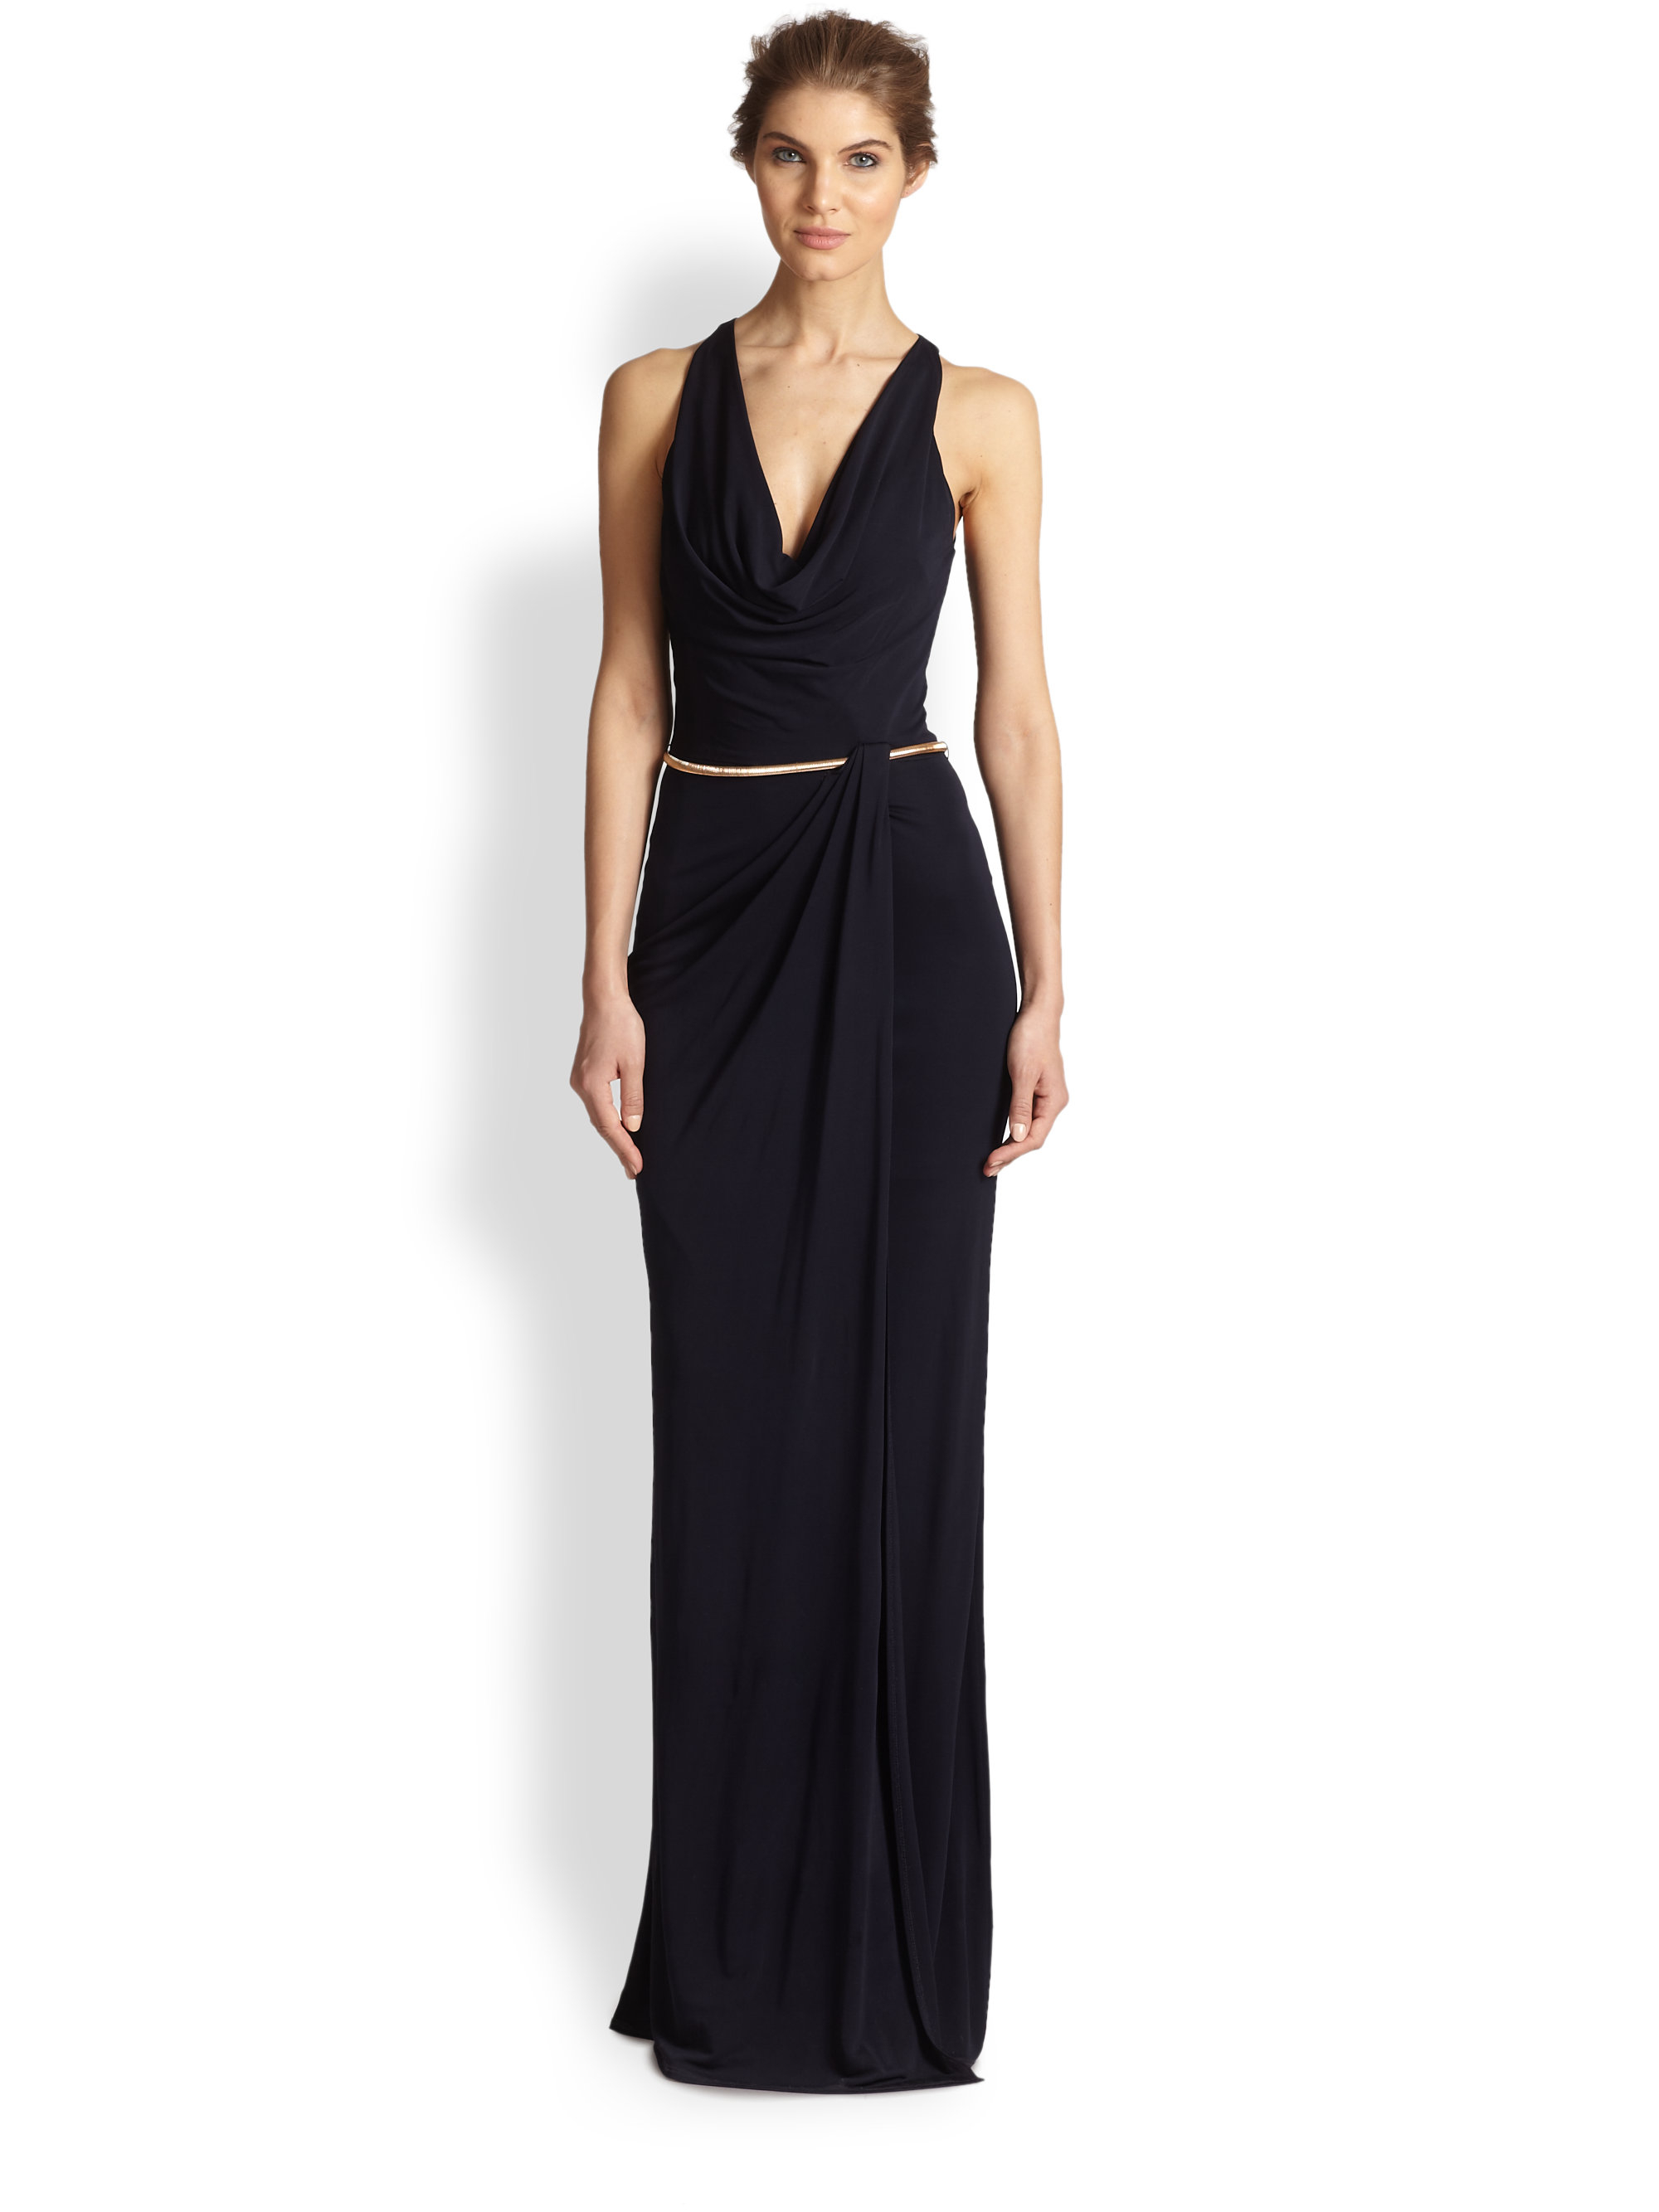 Lyst - David Meister Belted Cowl-Neck Gown in Blue